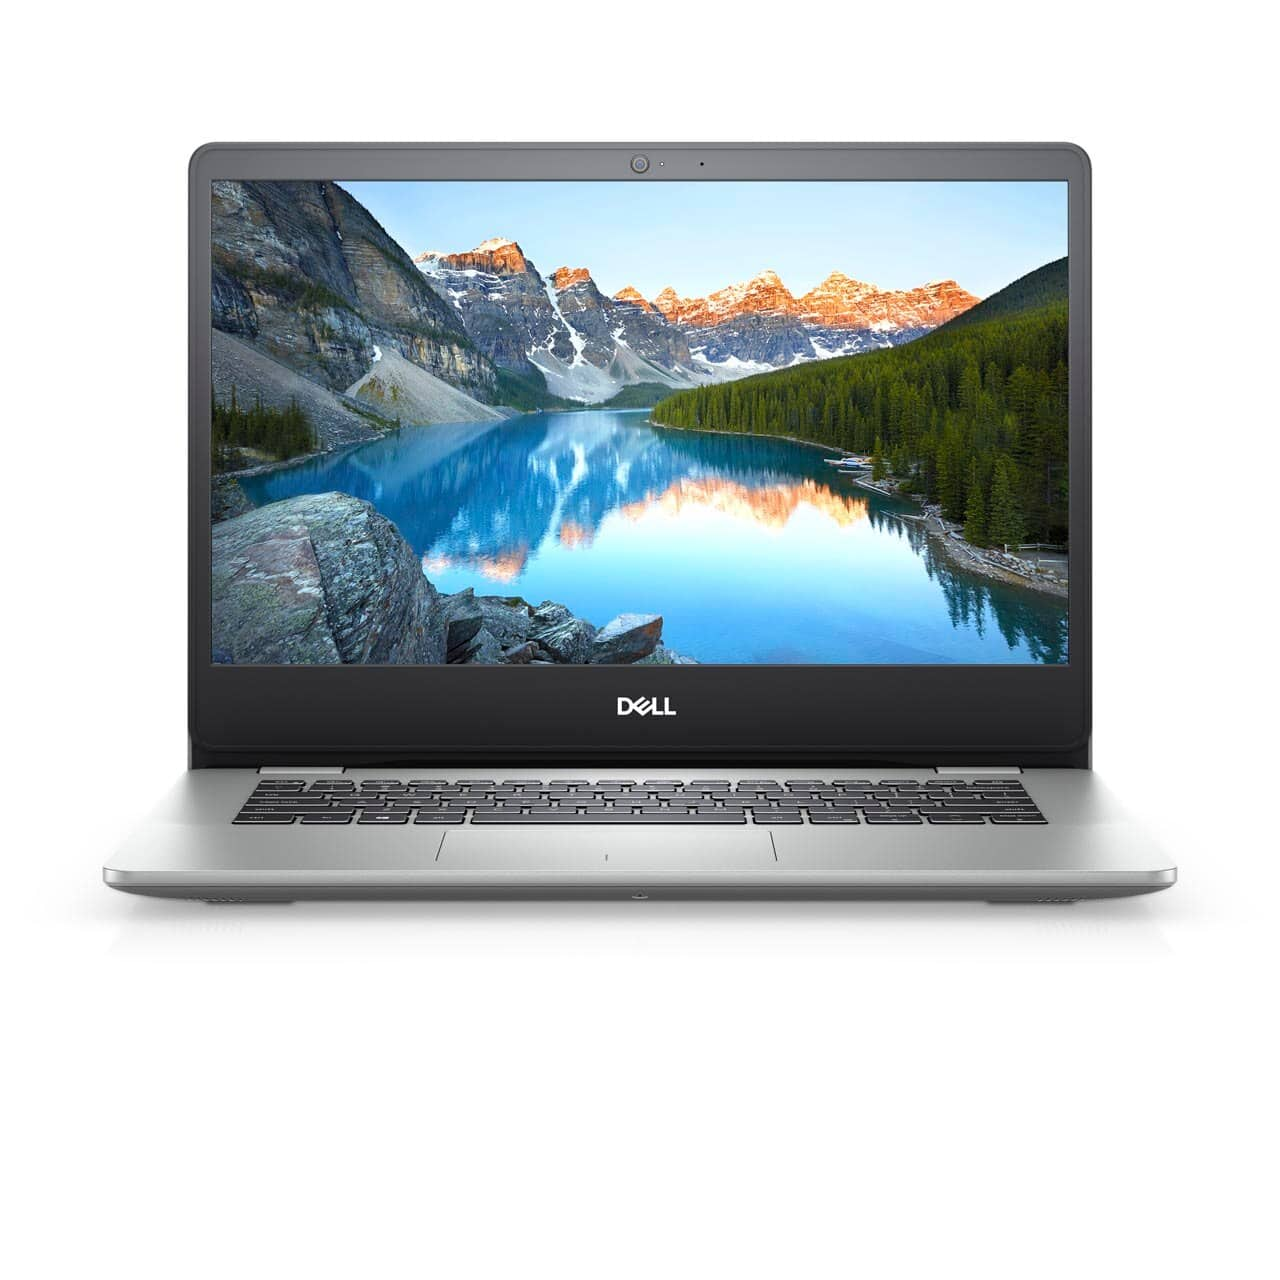 """Dell Inspiron 5493 - i7-1065G7, 14"""", 1080p IPS, 8GB DDR4, 512GB NVMe SSD, Win 10 593.77 + Free Shipping $593.77"""